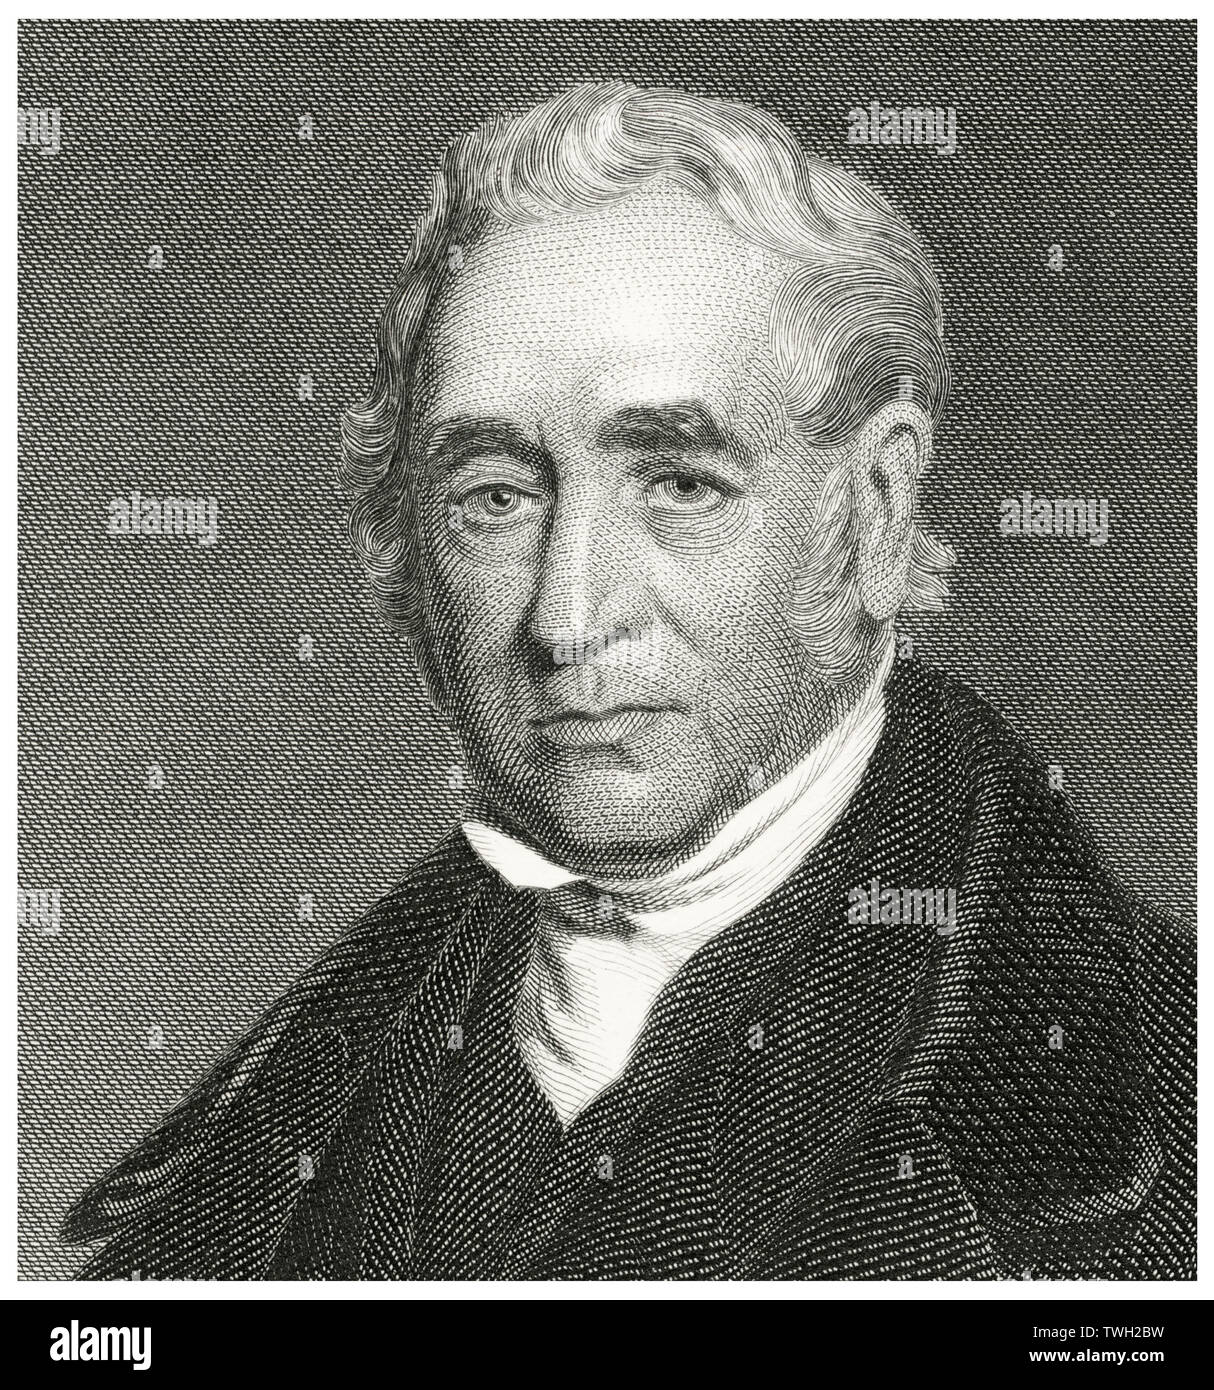 George Stephenson (1781-1848), English Engineer and Principal Inventor of the Railroad Locomotive, Head and Shoulders Portrait, Steel Engraving, Portrait Gallery of Eminent Men and Women of Europe and America by Evert A. Duyckinck, Published by Henry J. Johnson, Johnson, Wilson & Company, New York, 1873 - Stock Image